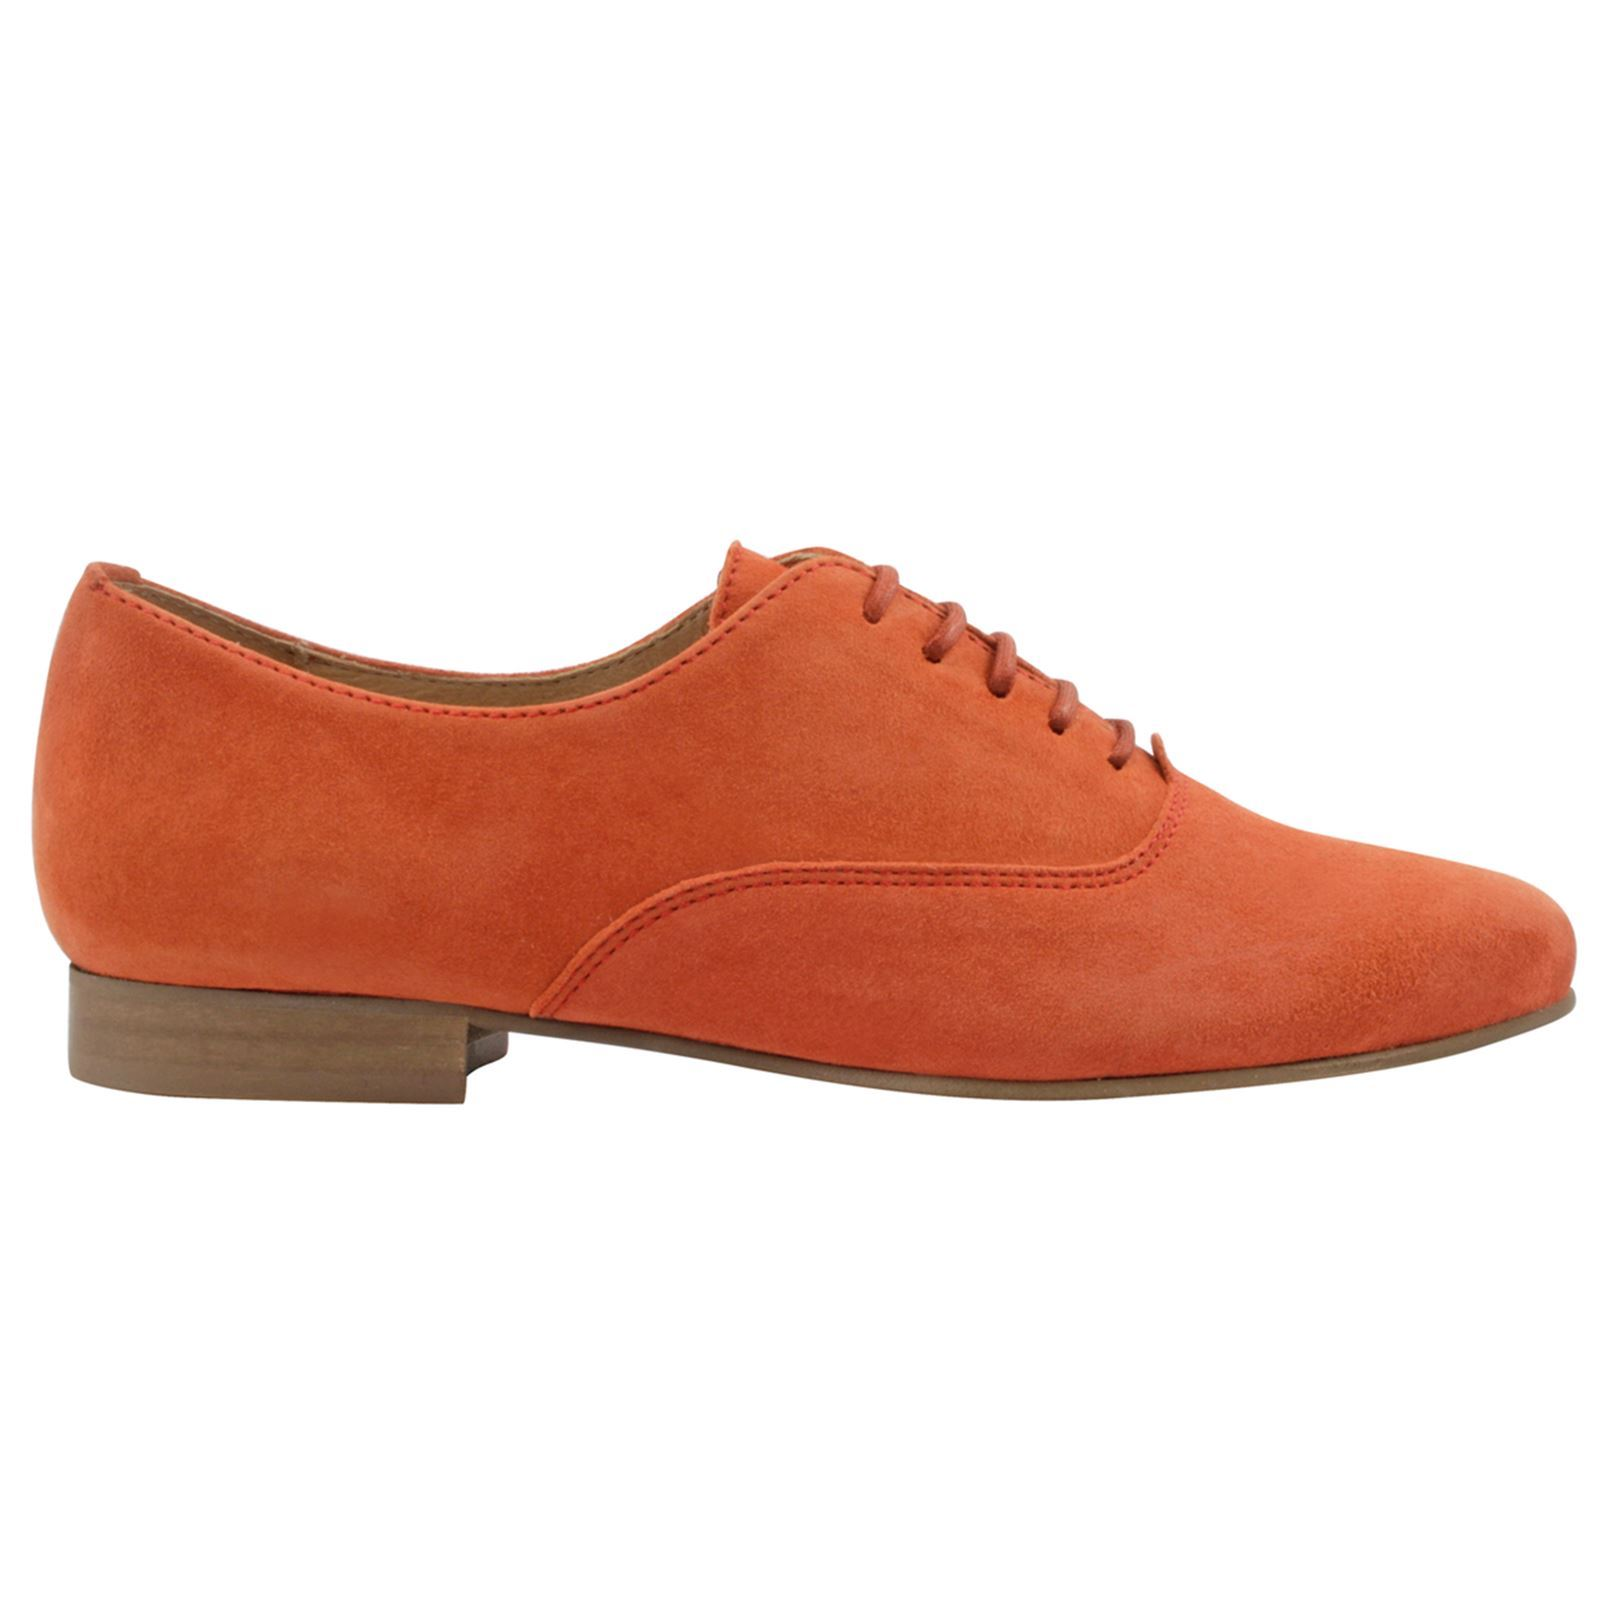 Exclusif Paris Vito - Richelieu en cuir - rouge z29Meal